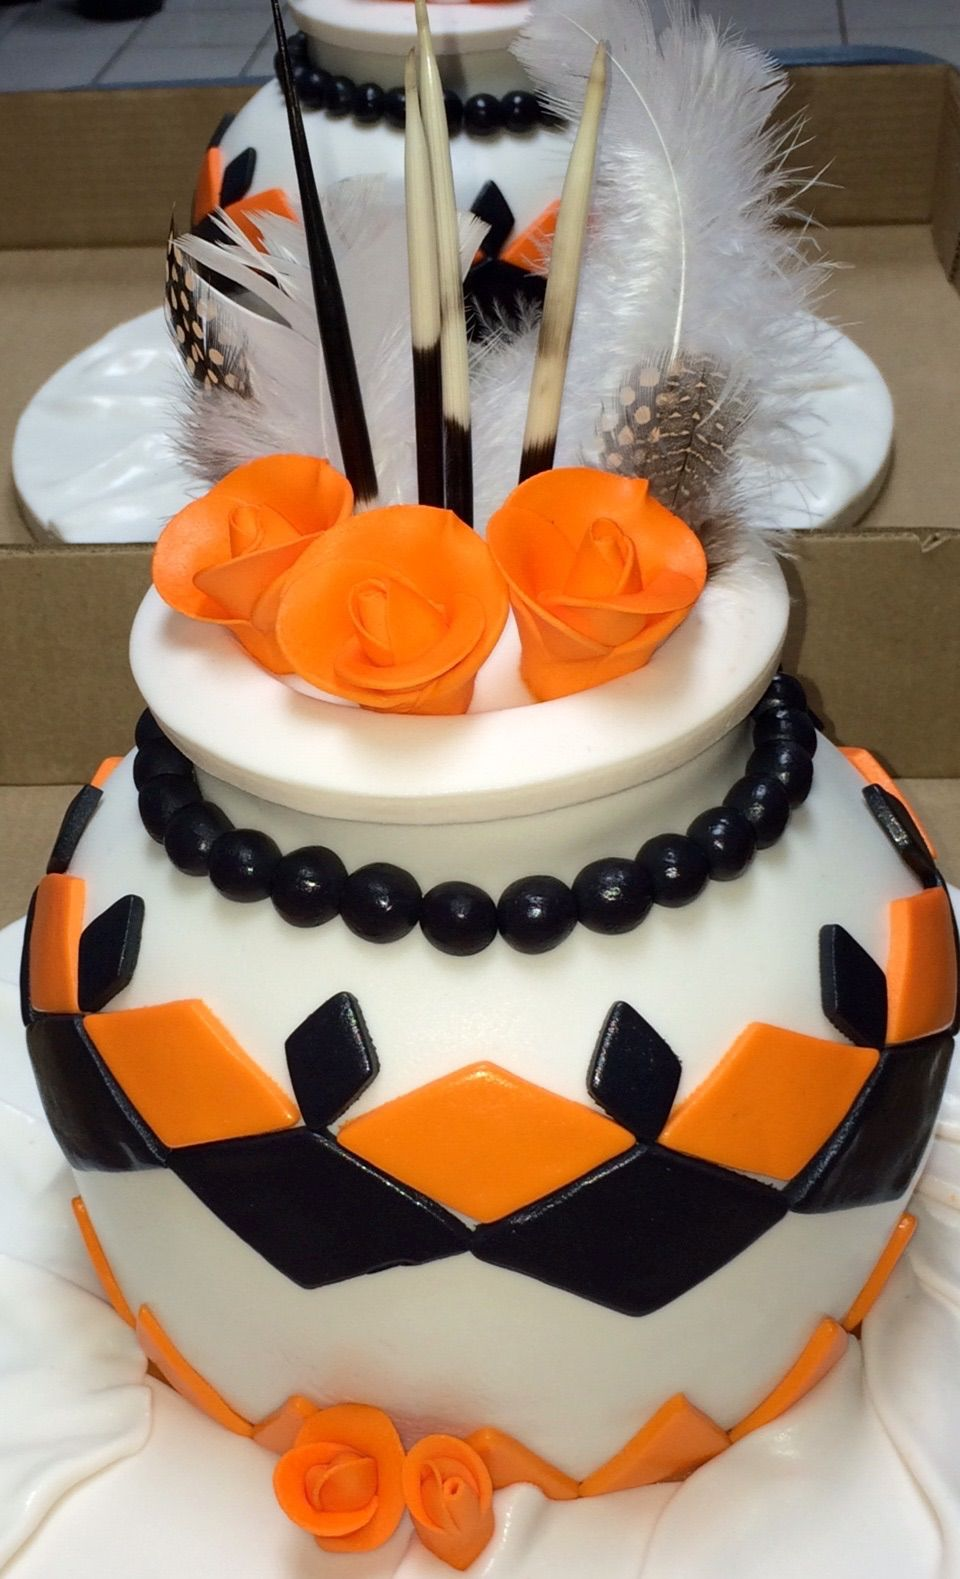 Wedding Cakes And Prices In Nigeria